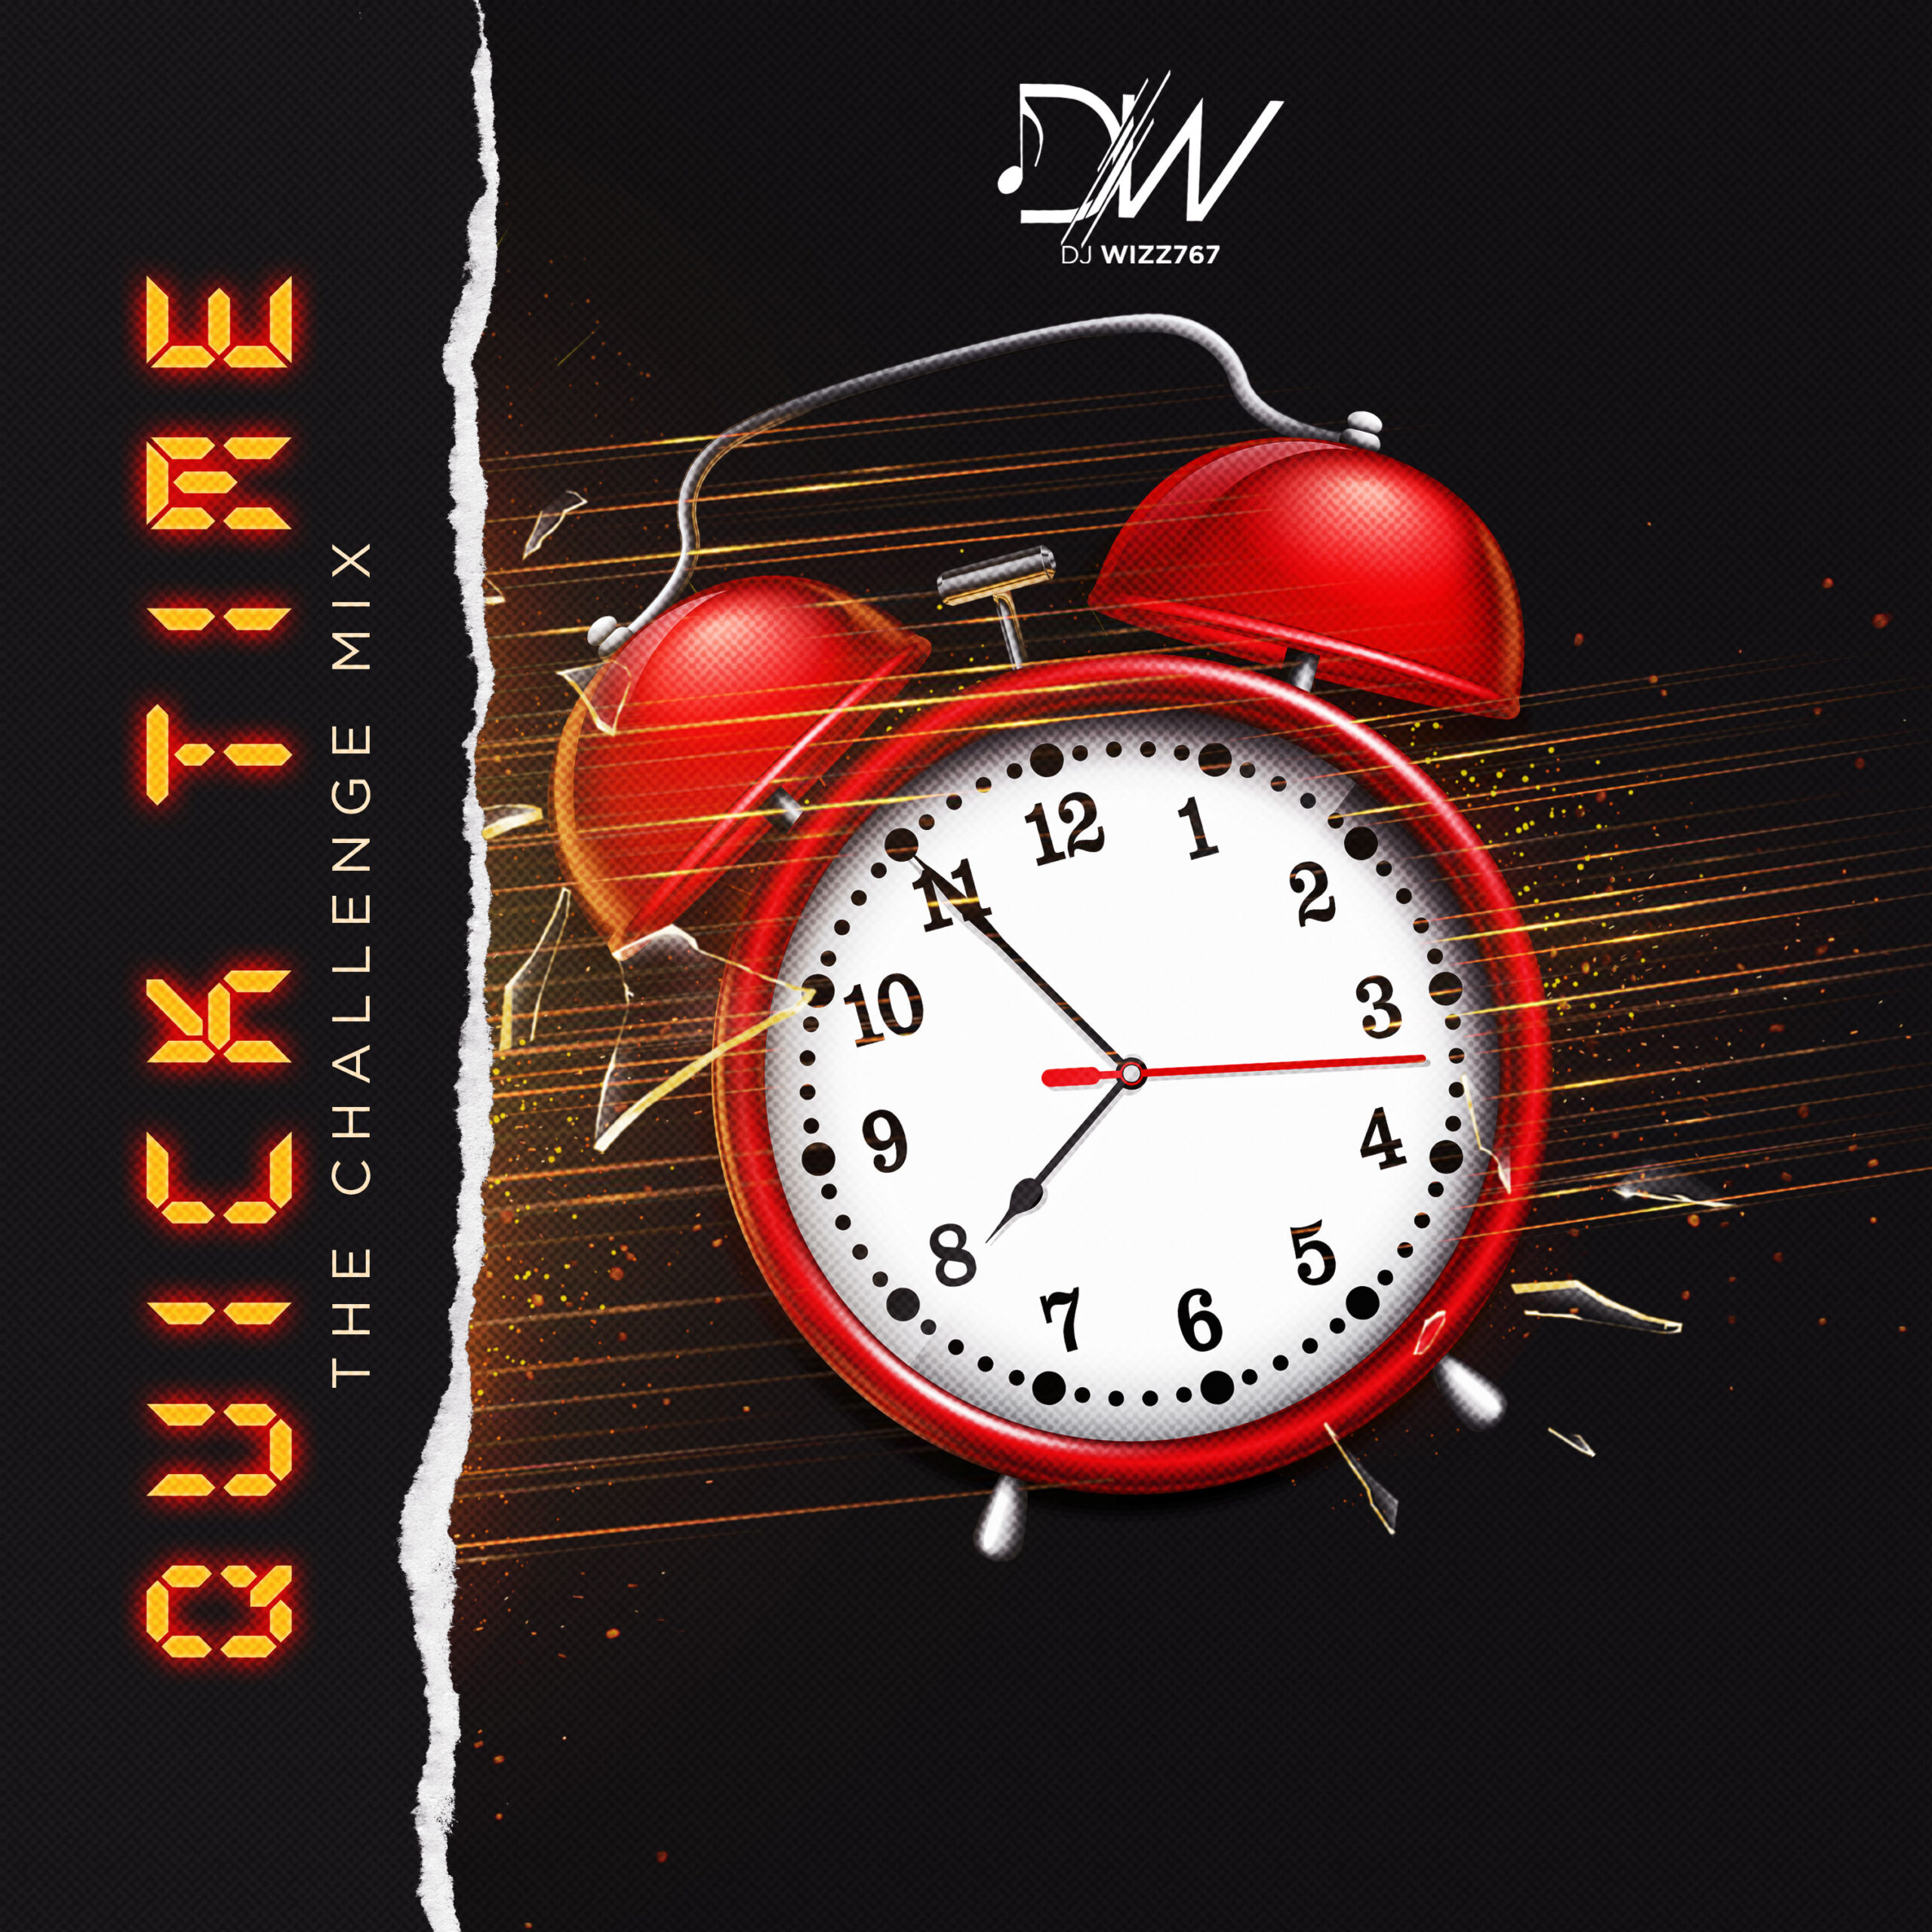 Dj Wizz767 – QUICK TIME (THE CHALLENGE MIX)